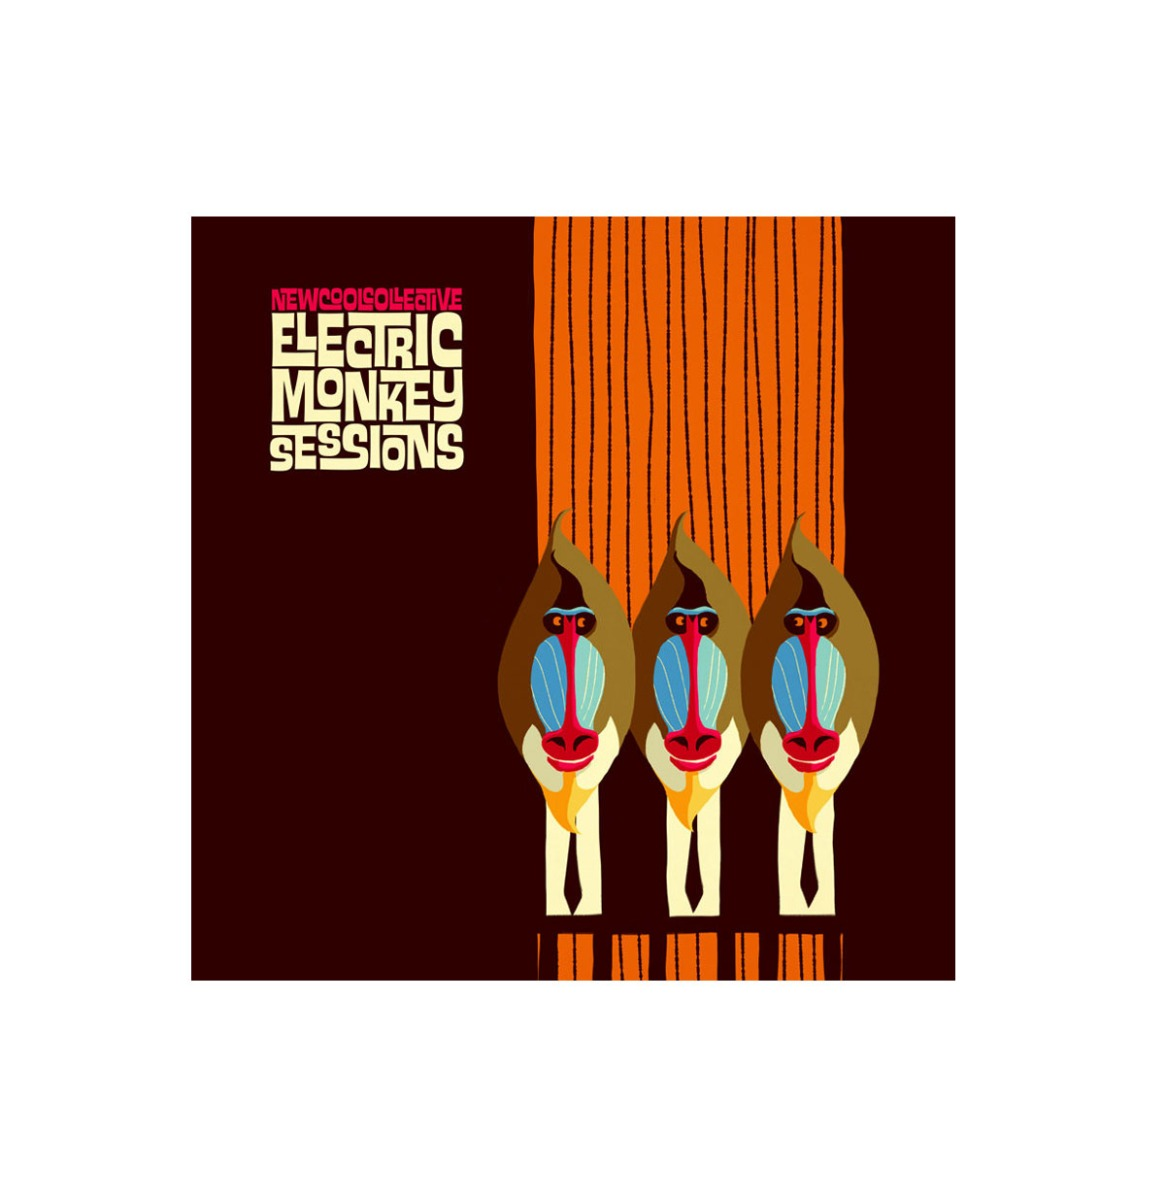 New Cool Collective - Electric Monkey Sessions LP Limited Edition Coloured Vinyl